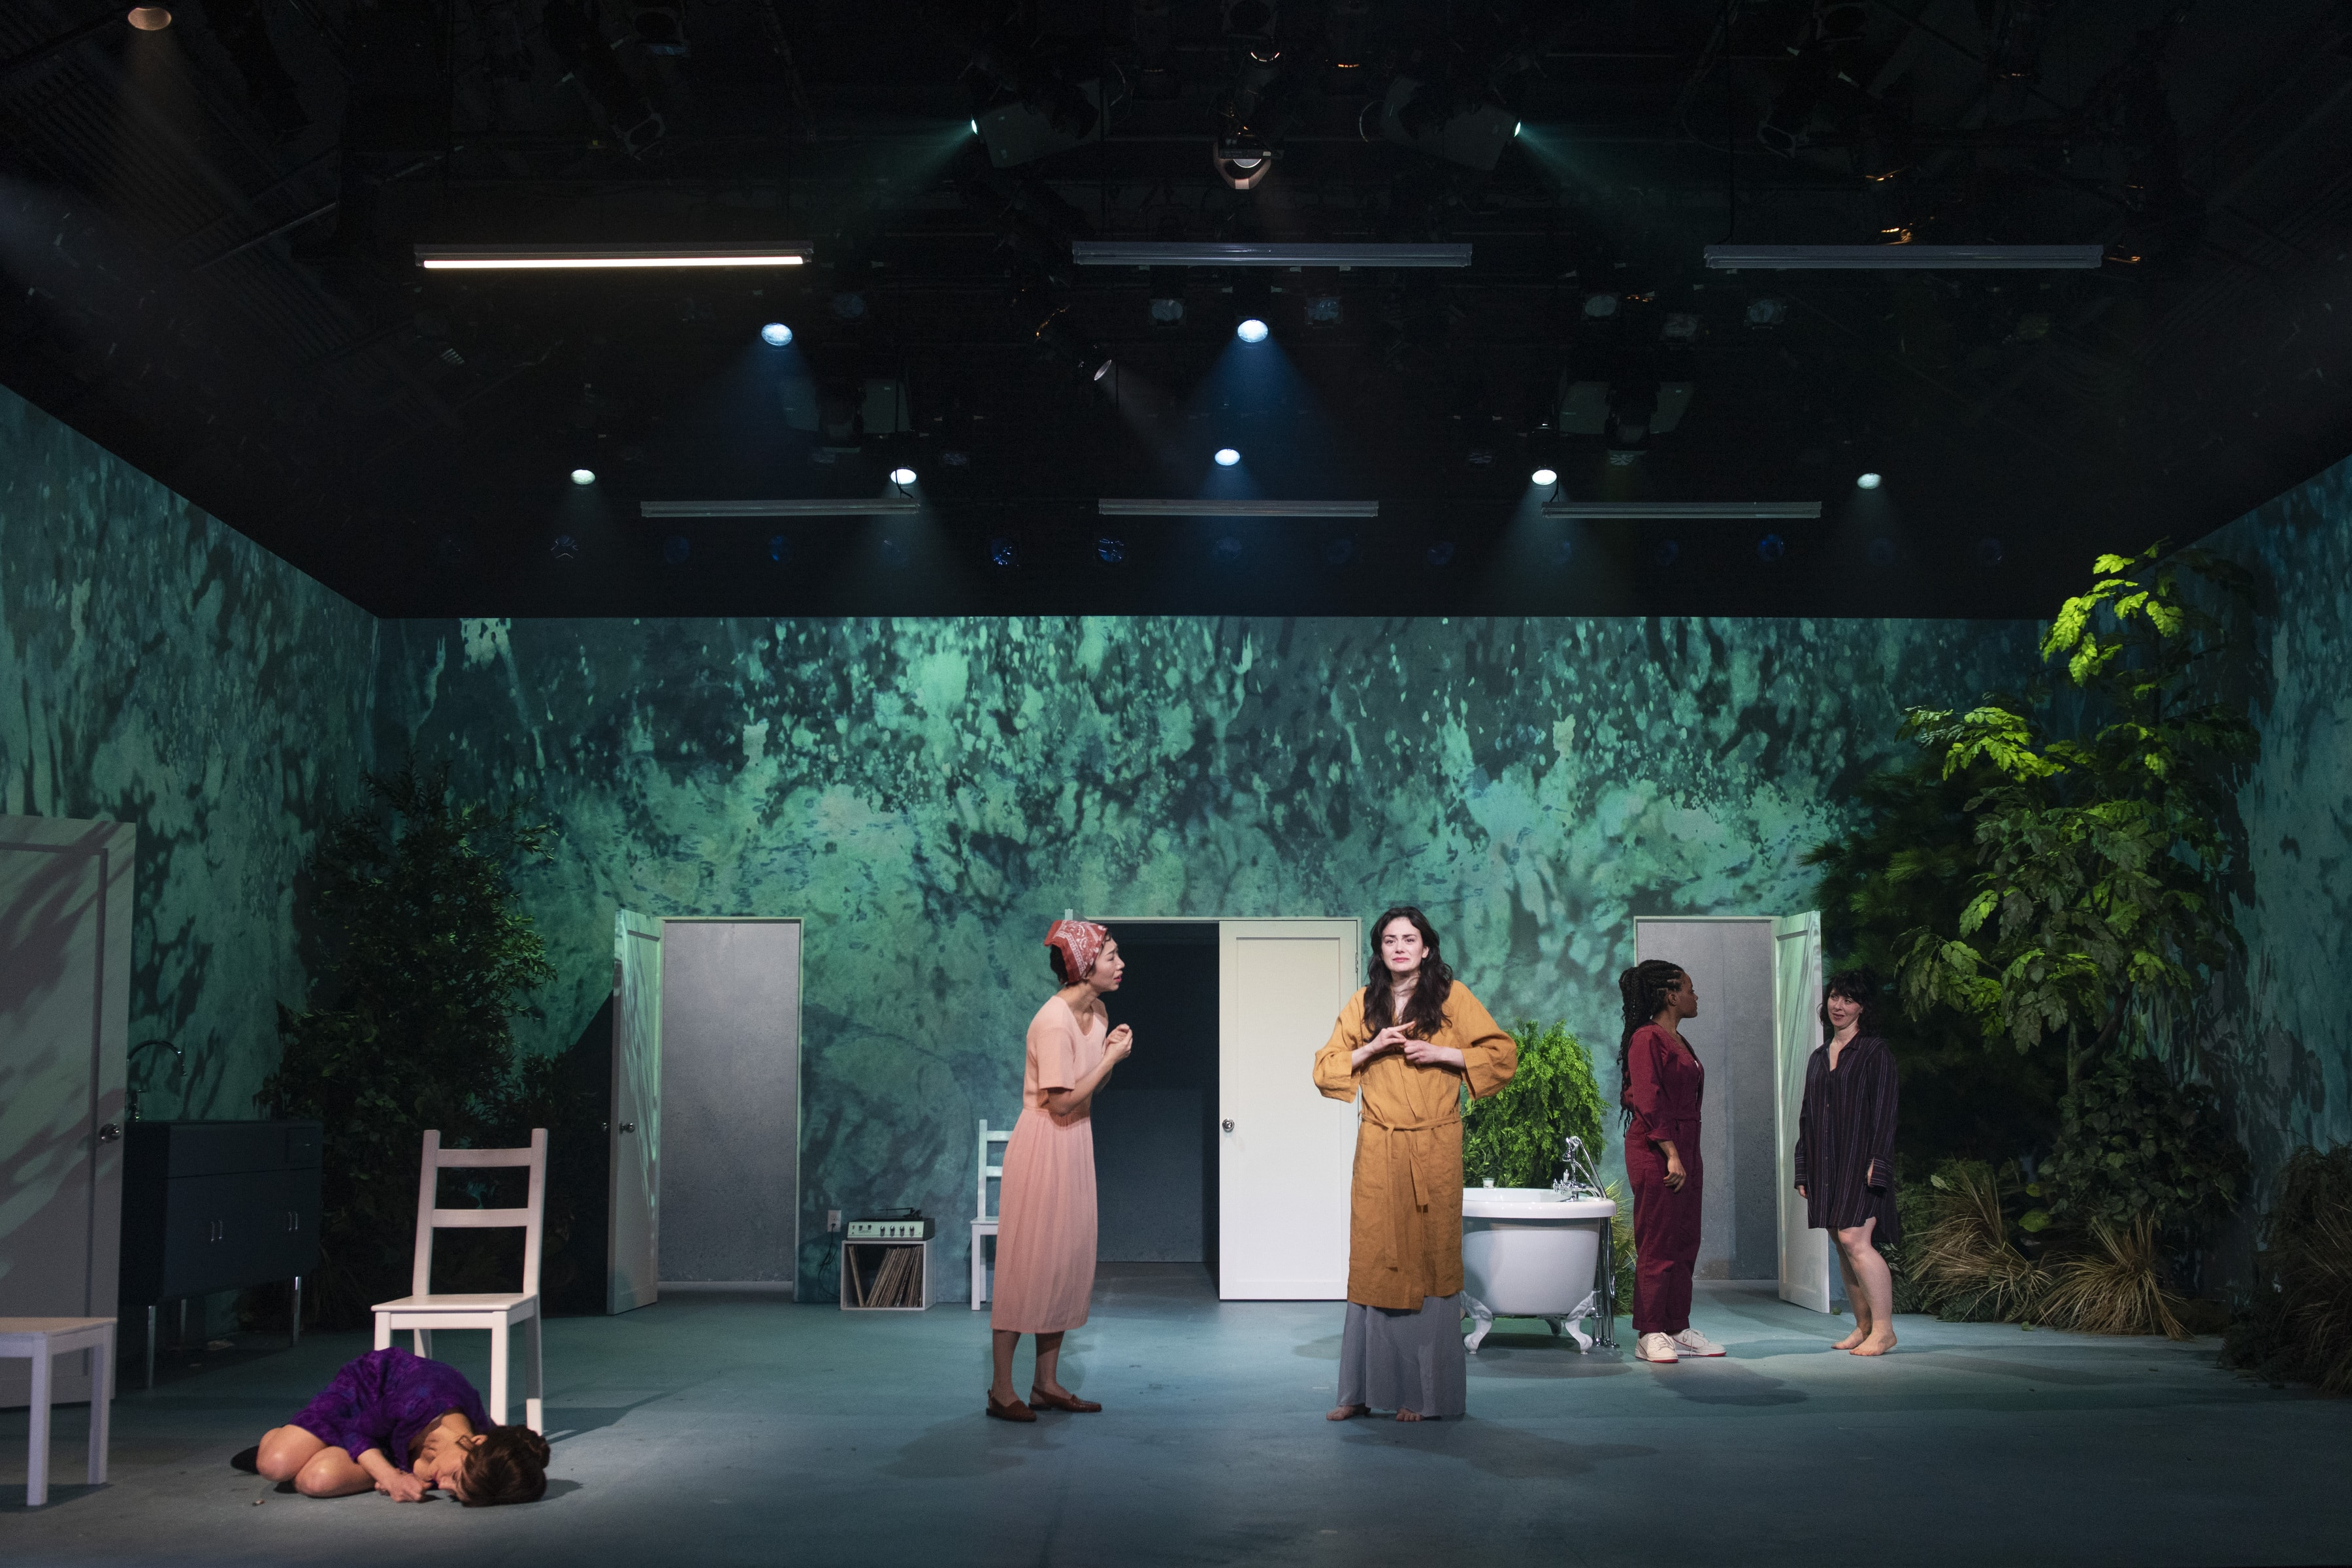 Carla Gugino (Carol), Jo Mei (Lola), Celeste Arias (Anna), Gabby Beans (Bonnie), and Miriam Silverman (Esther) in <i>Anatomy of a Suicide</i>. Photo: Ahron R. Foster